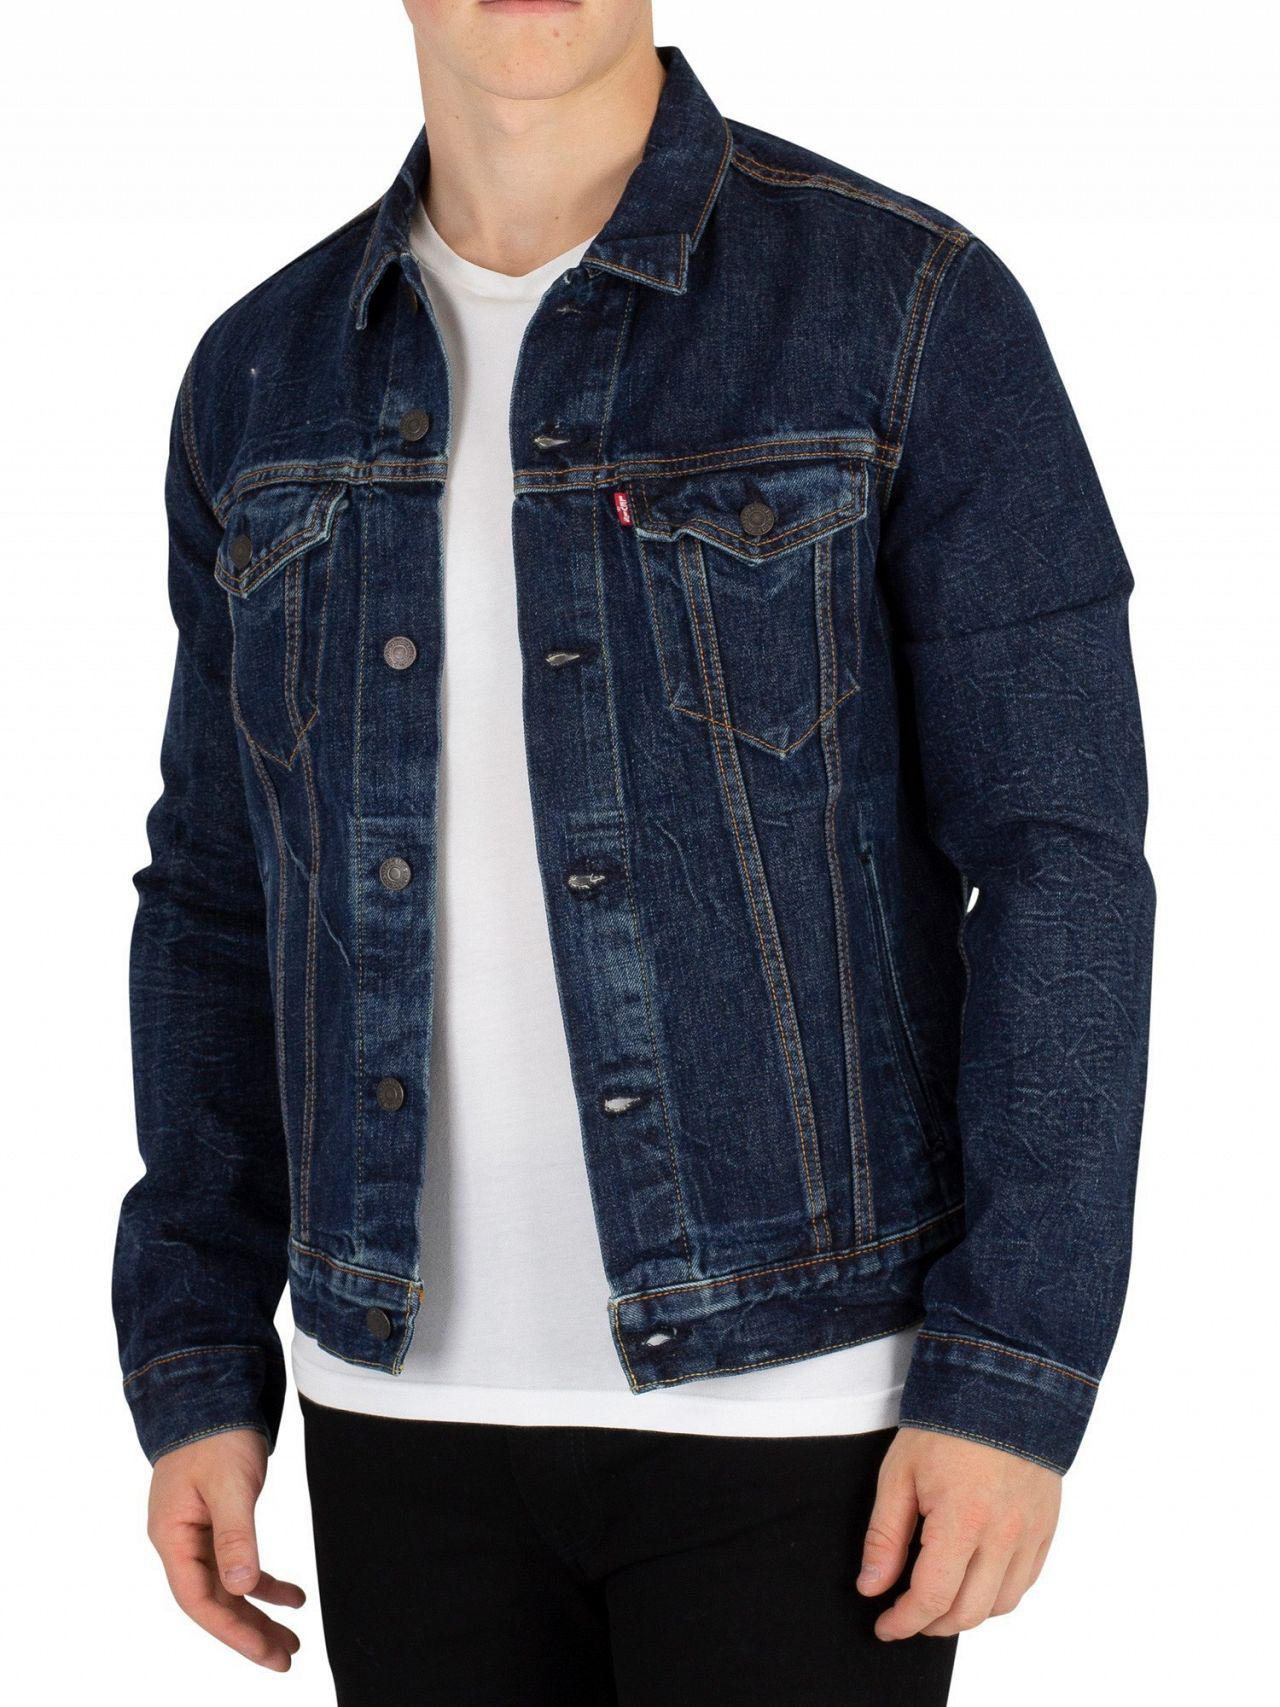 Lyst - Levi s Barrow Lane The Trucker Jacket in Blue for Men - Save 21% 8d1e4a5eb47